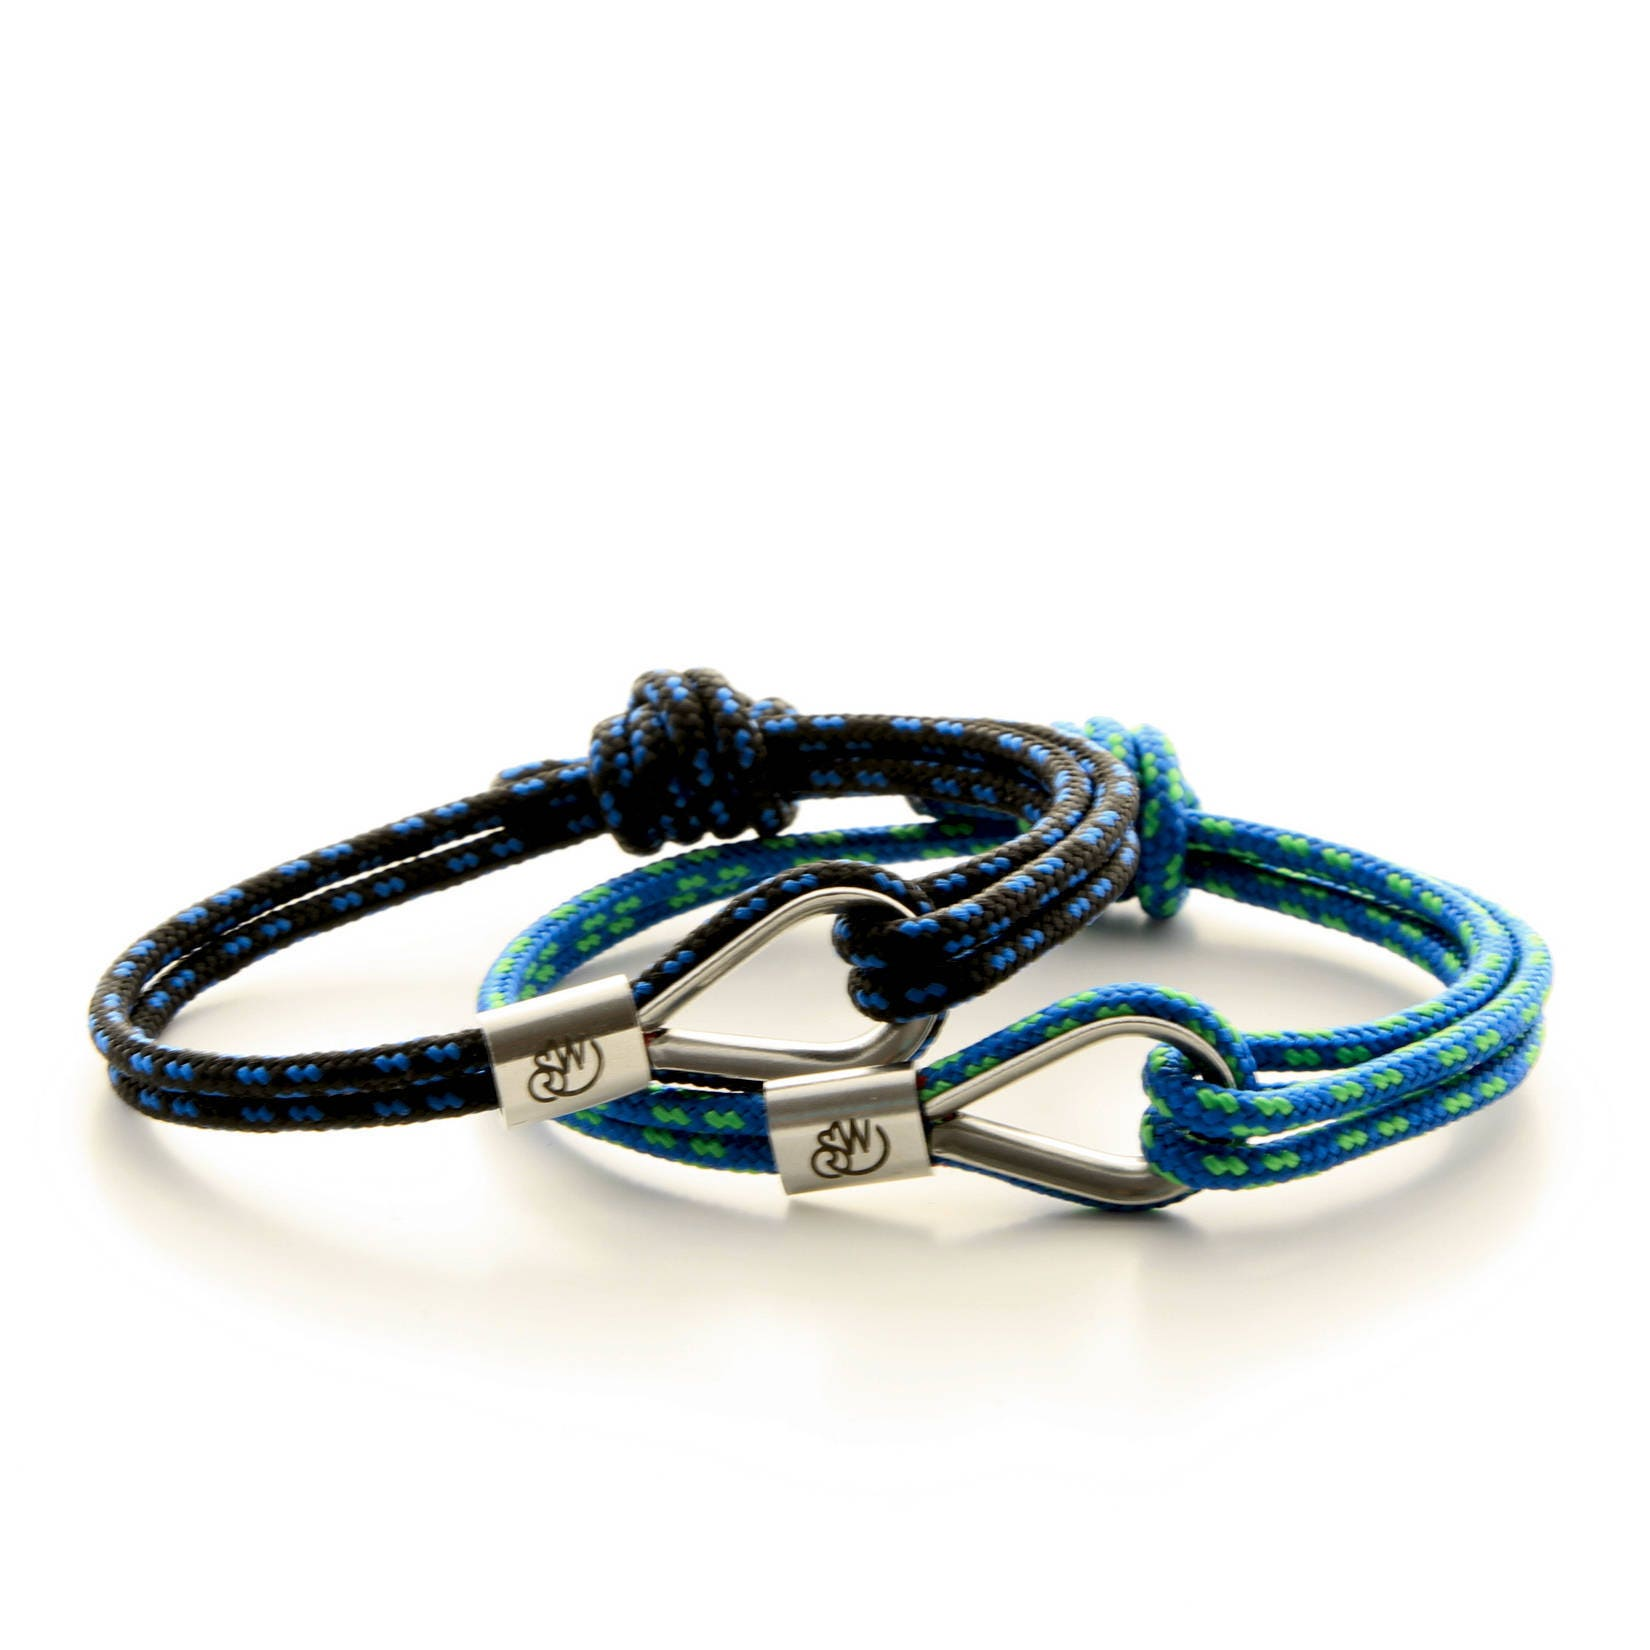 bracelet products pinterest rope pin colors nautical shackle paracord